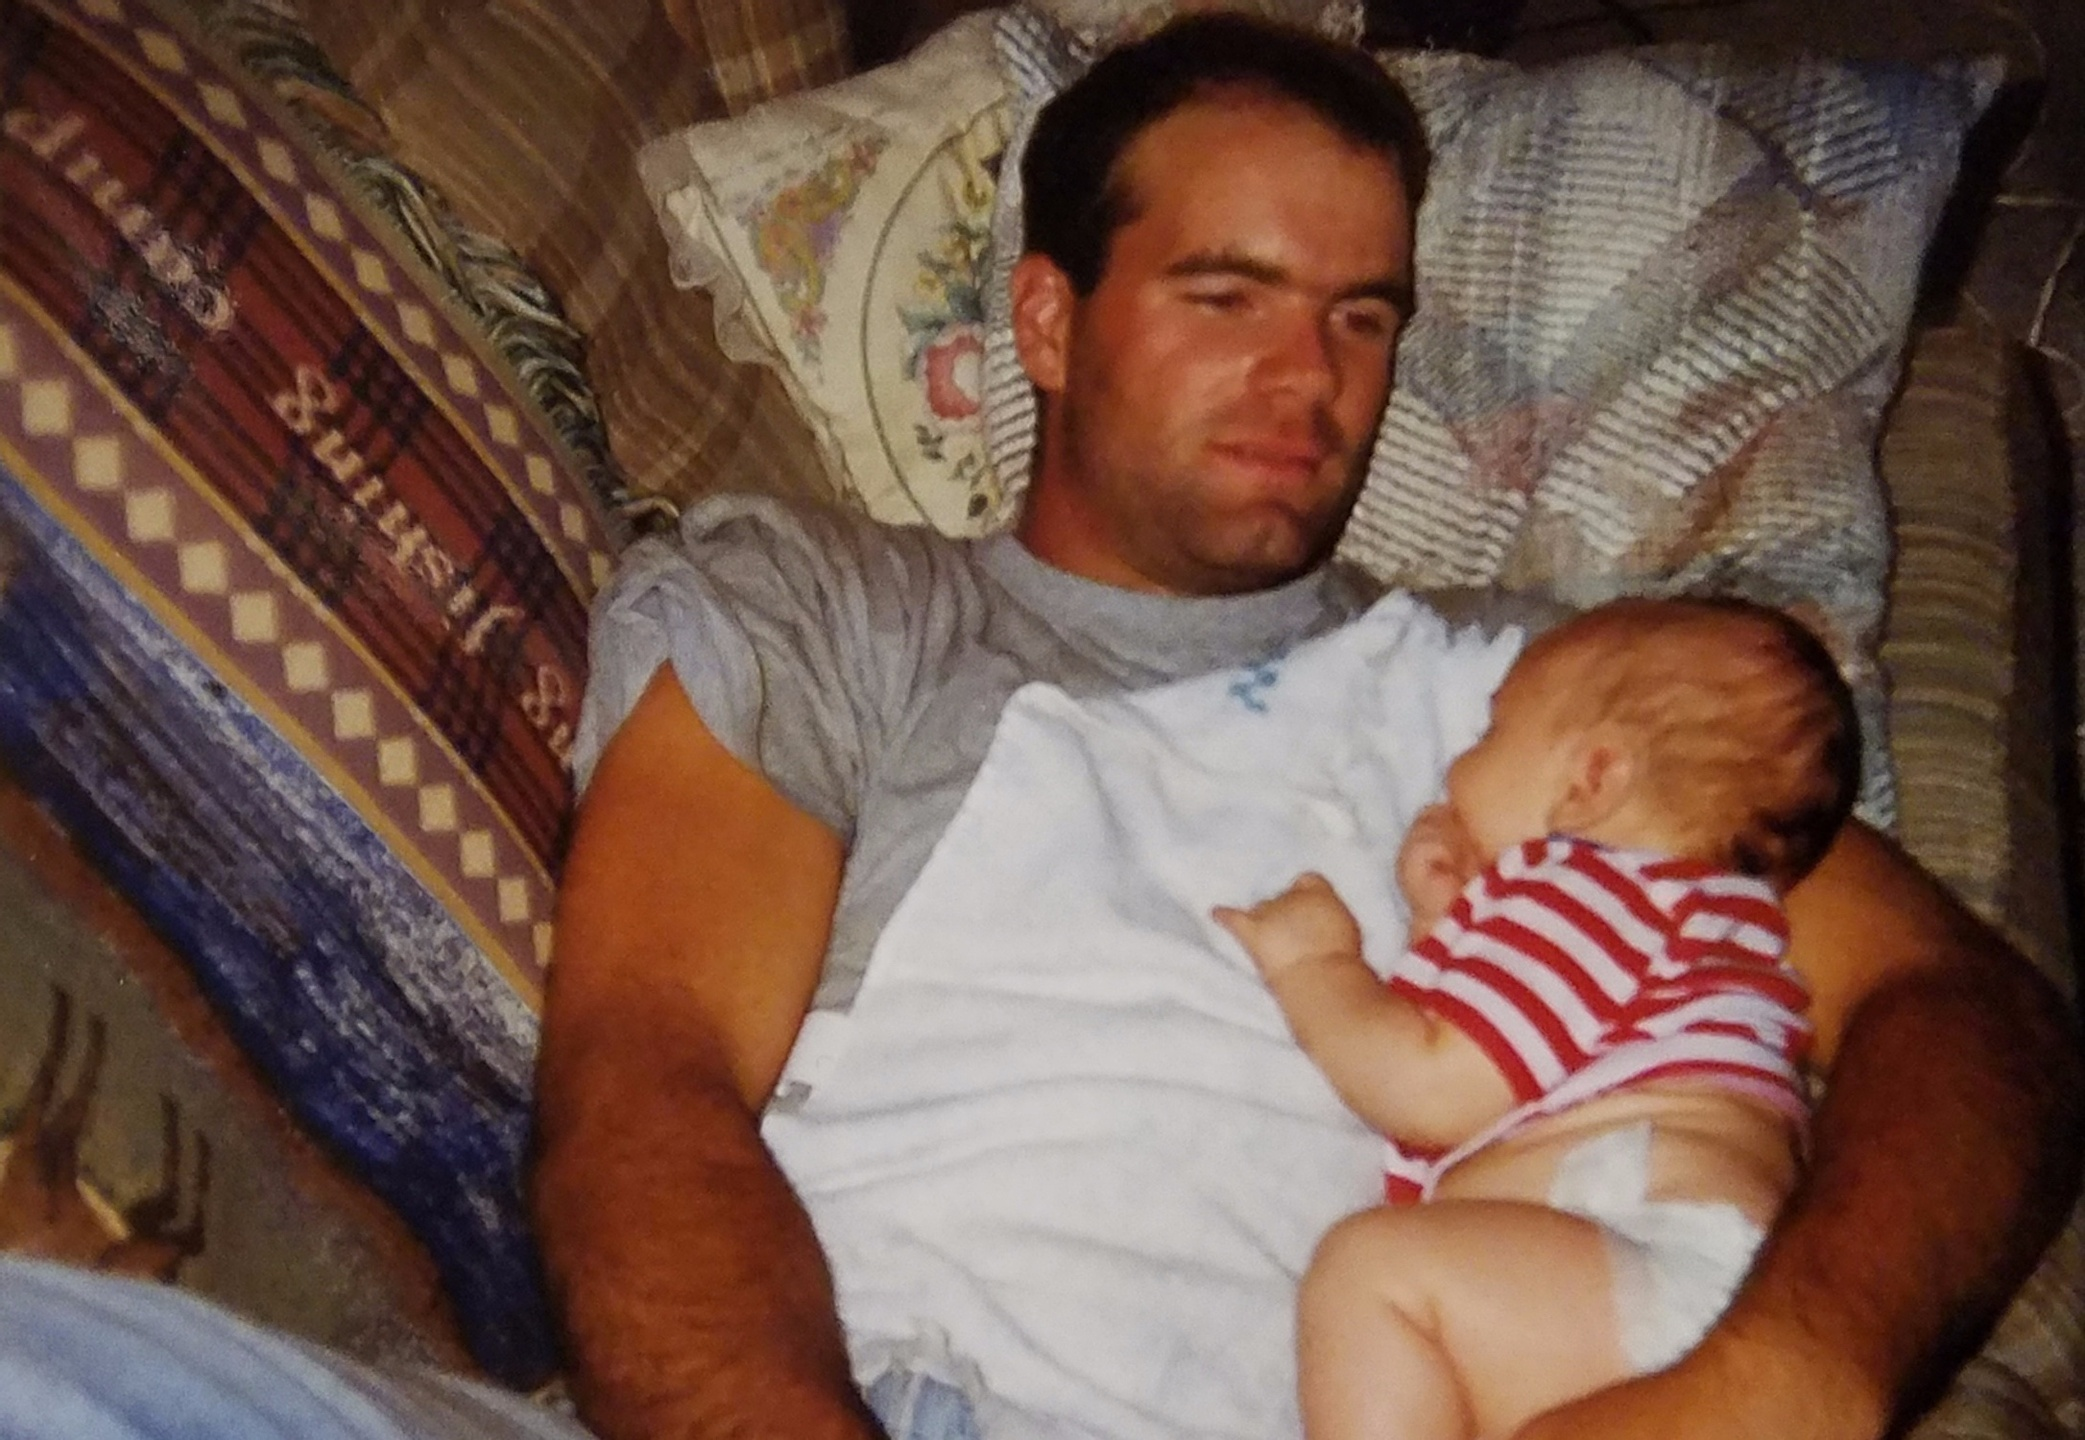 dad laying on couch holding infant